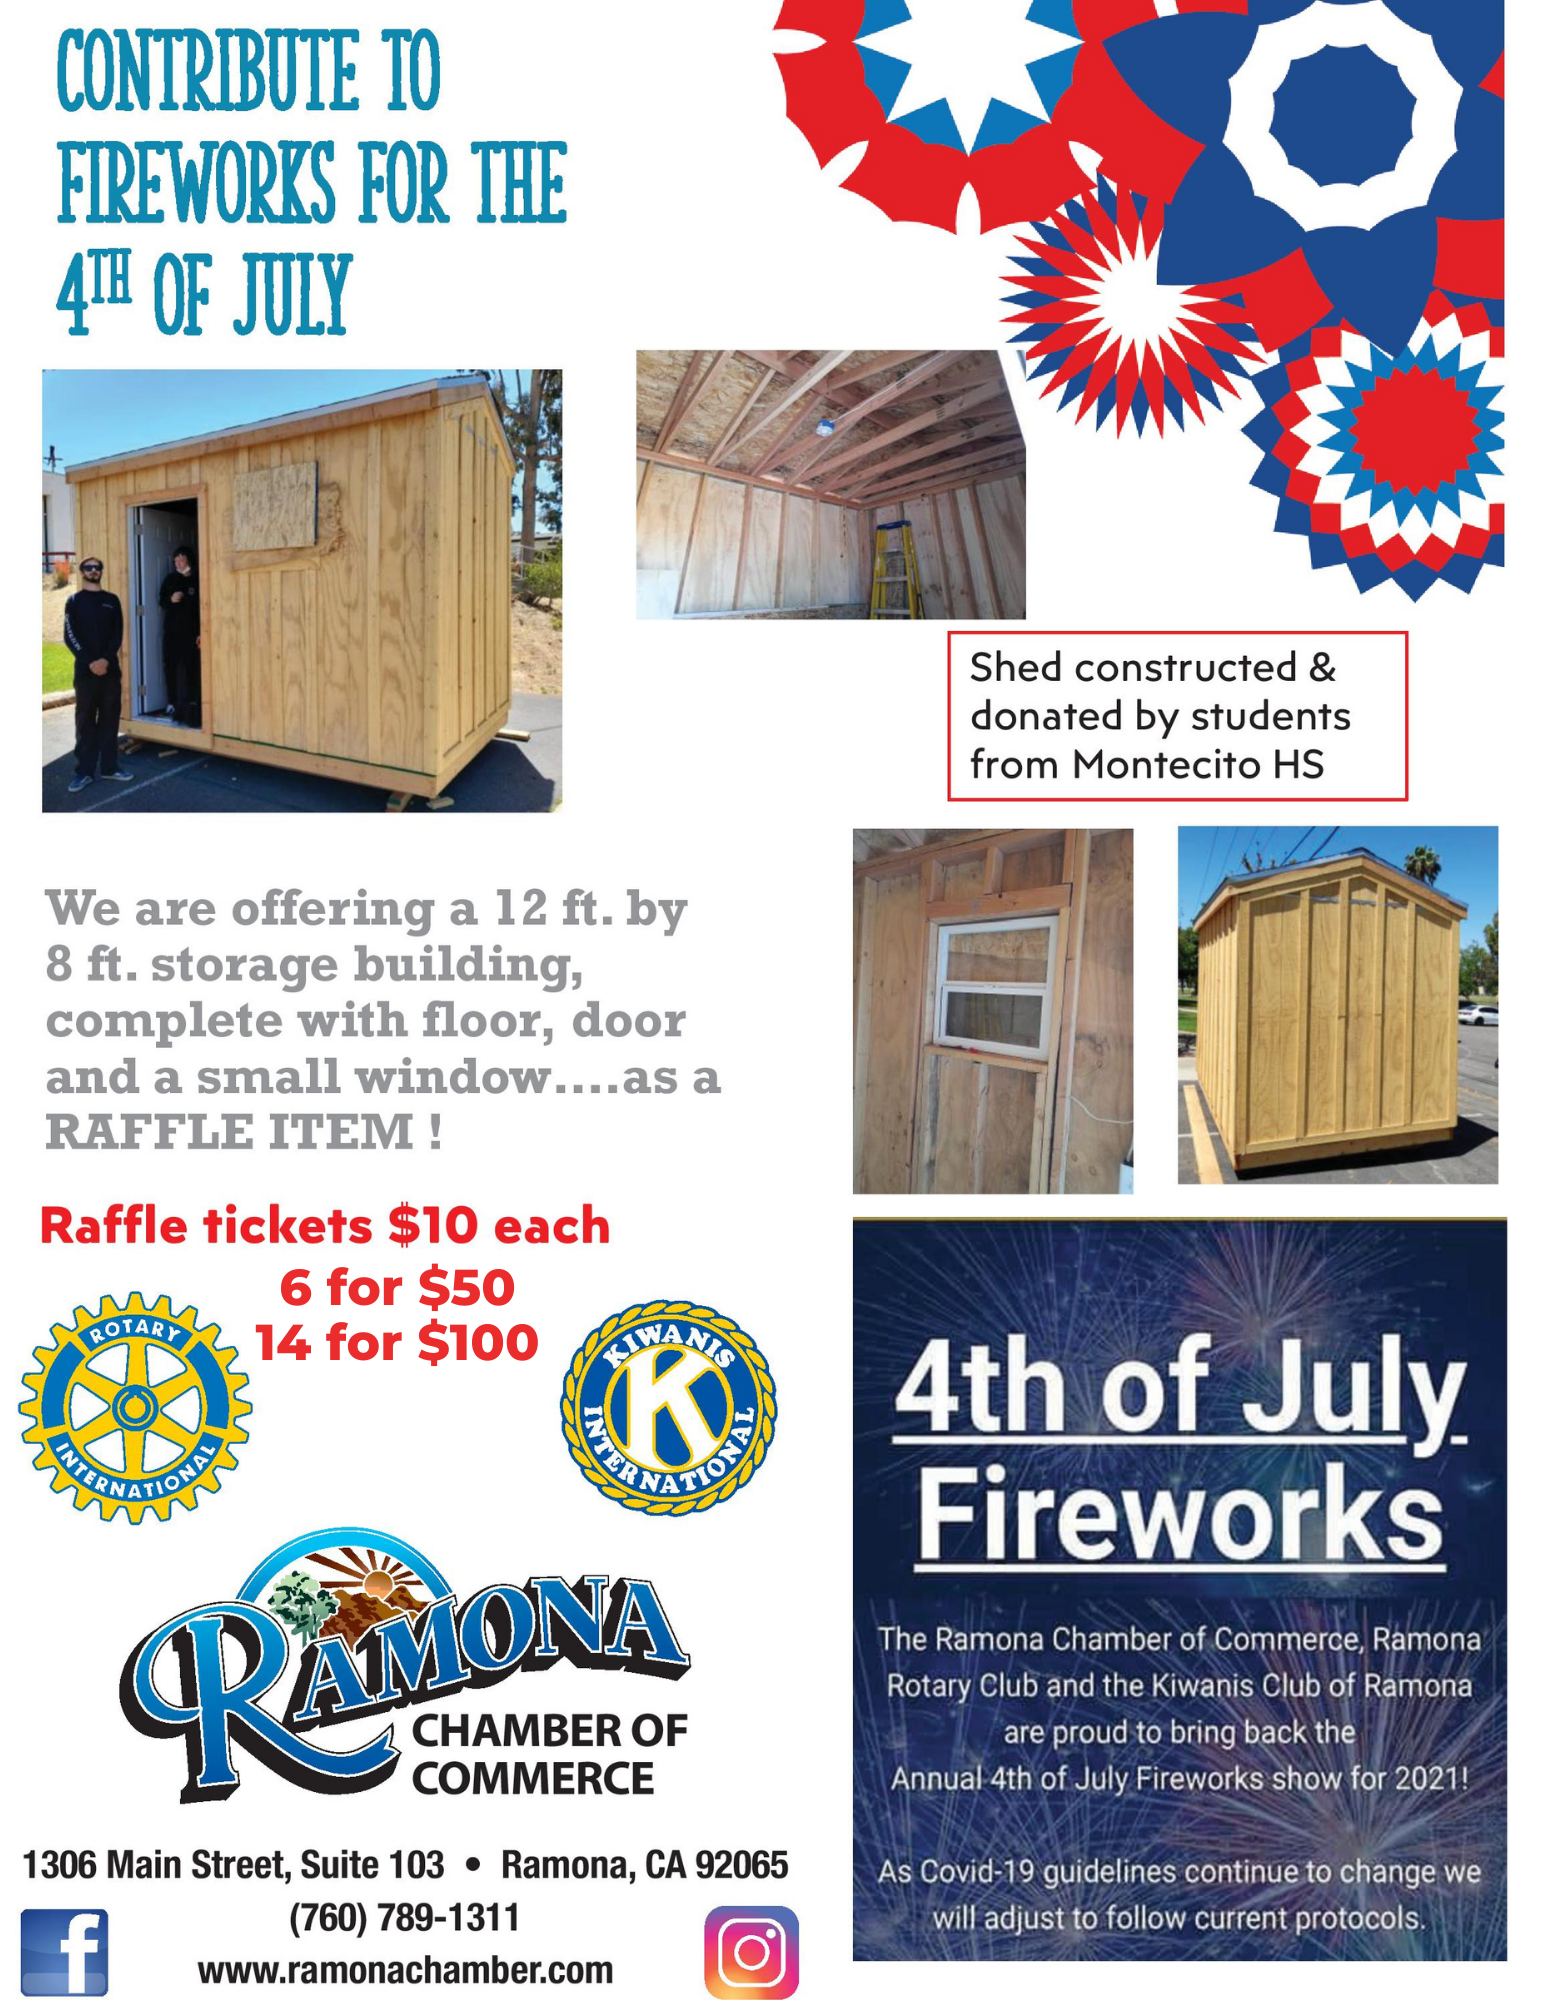 National Day of the Cowboy 2021 - shed raffle donations go to Ramona Fireworks